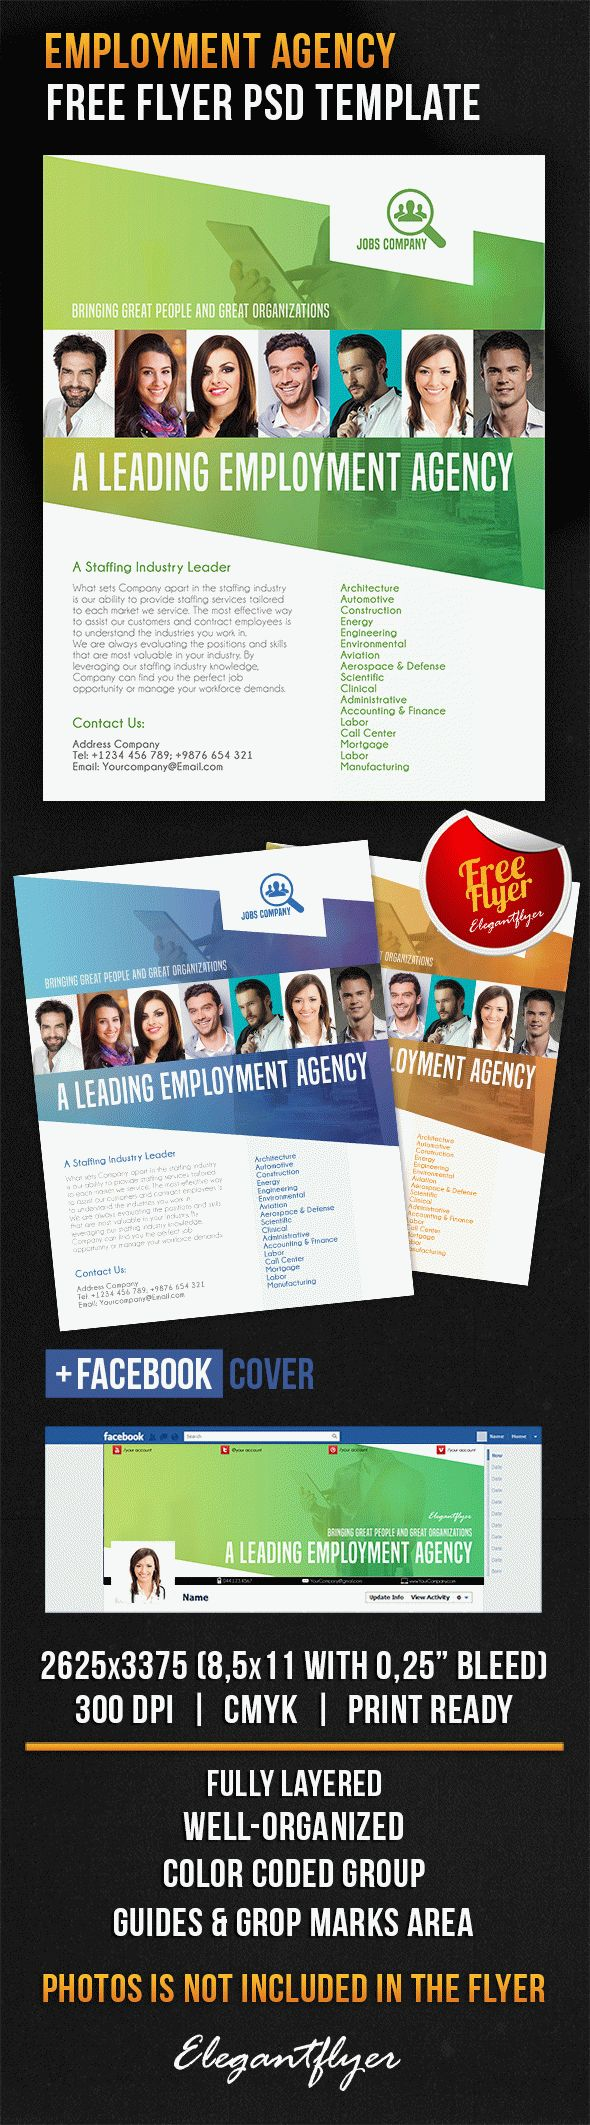 employment agency free flyer psd template by elegantflyer. Black Bedroom Furniture Sets. Home Design Ideas